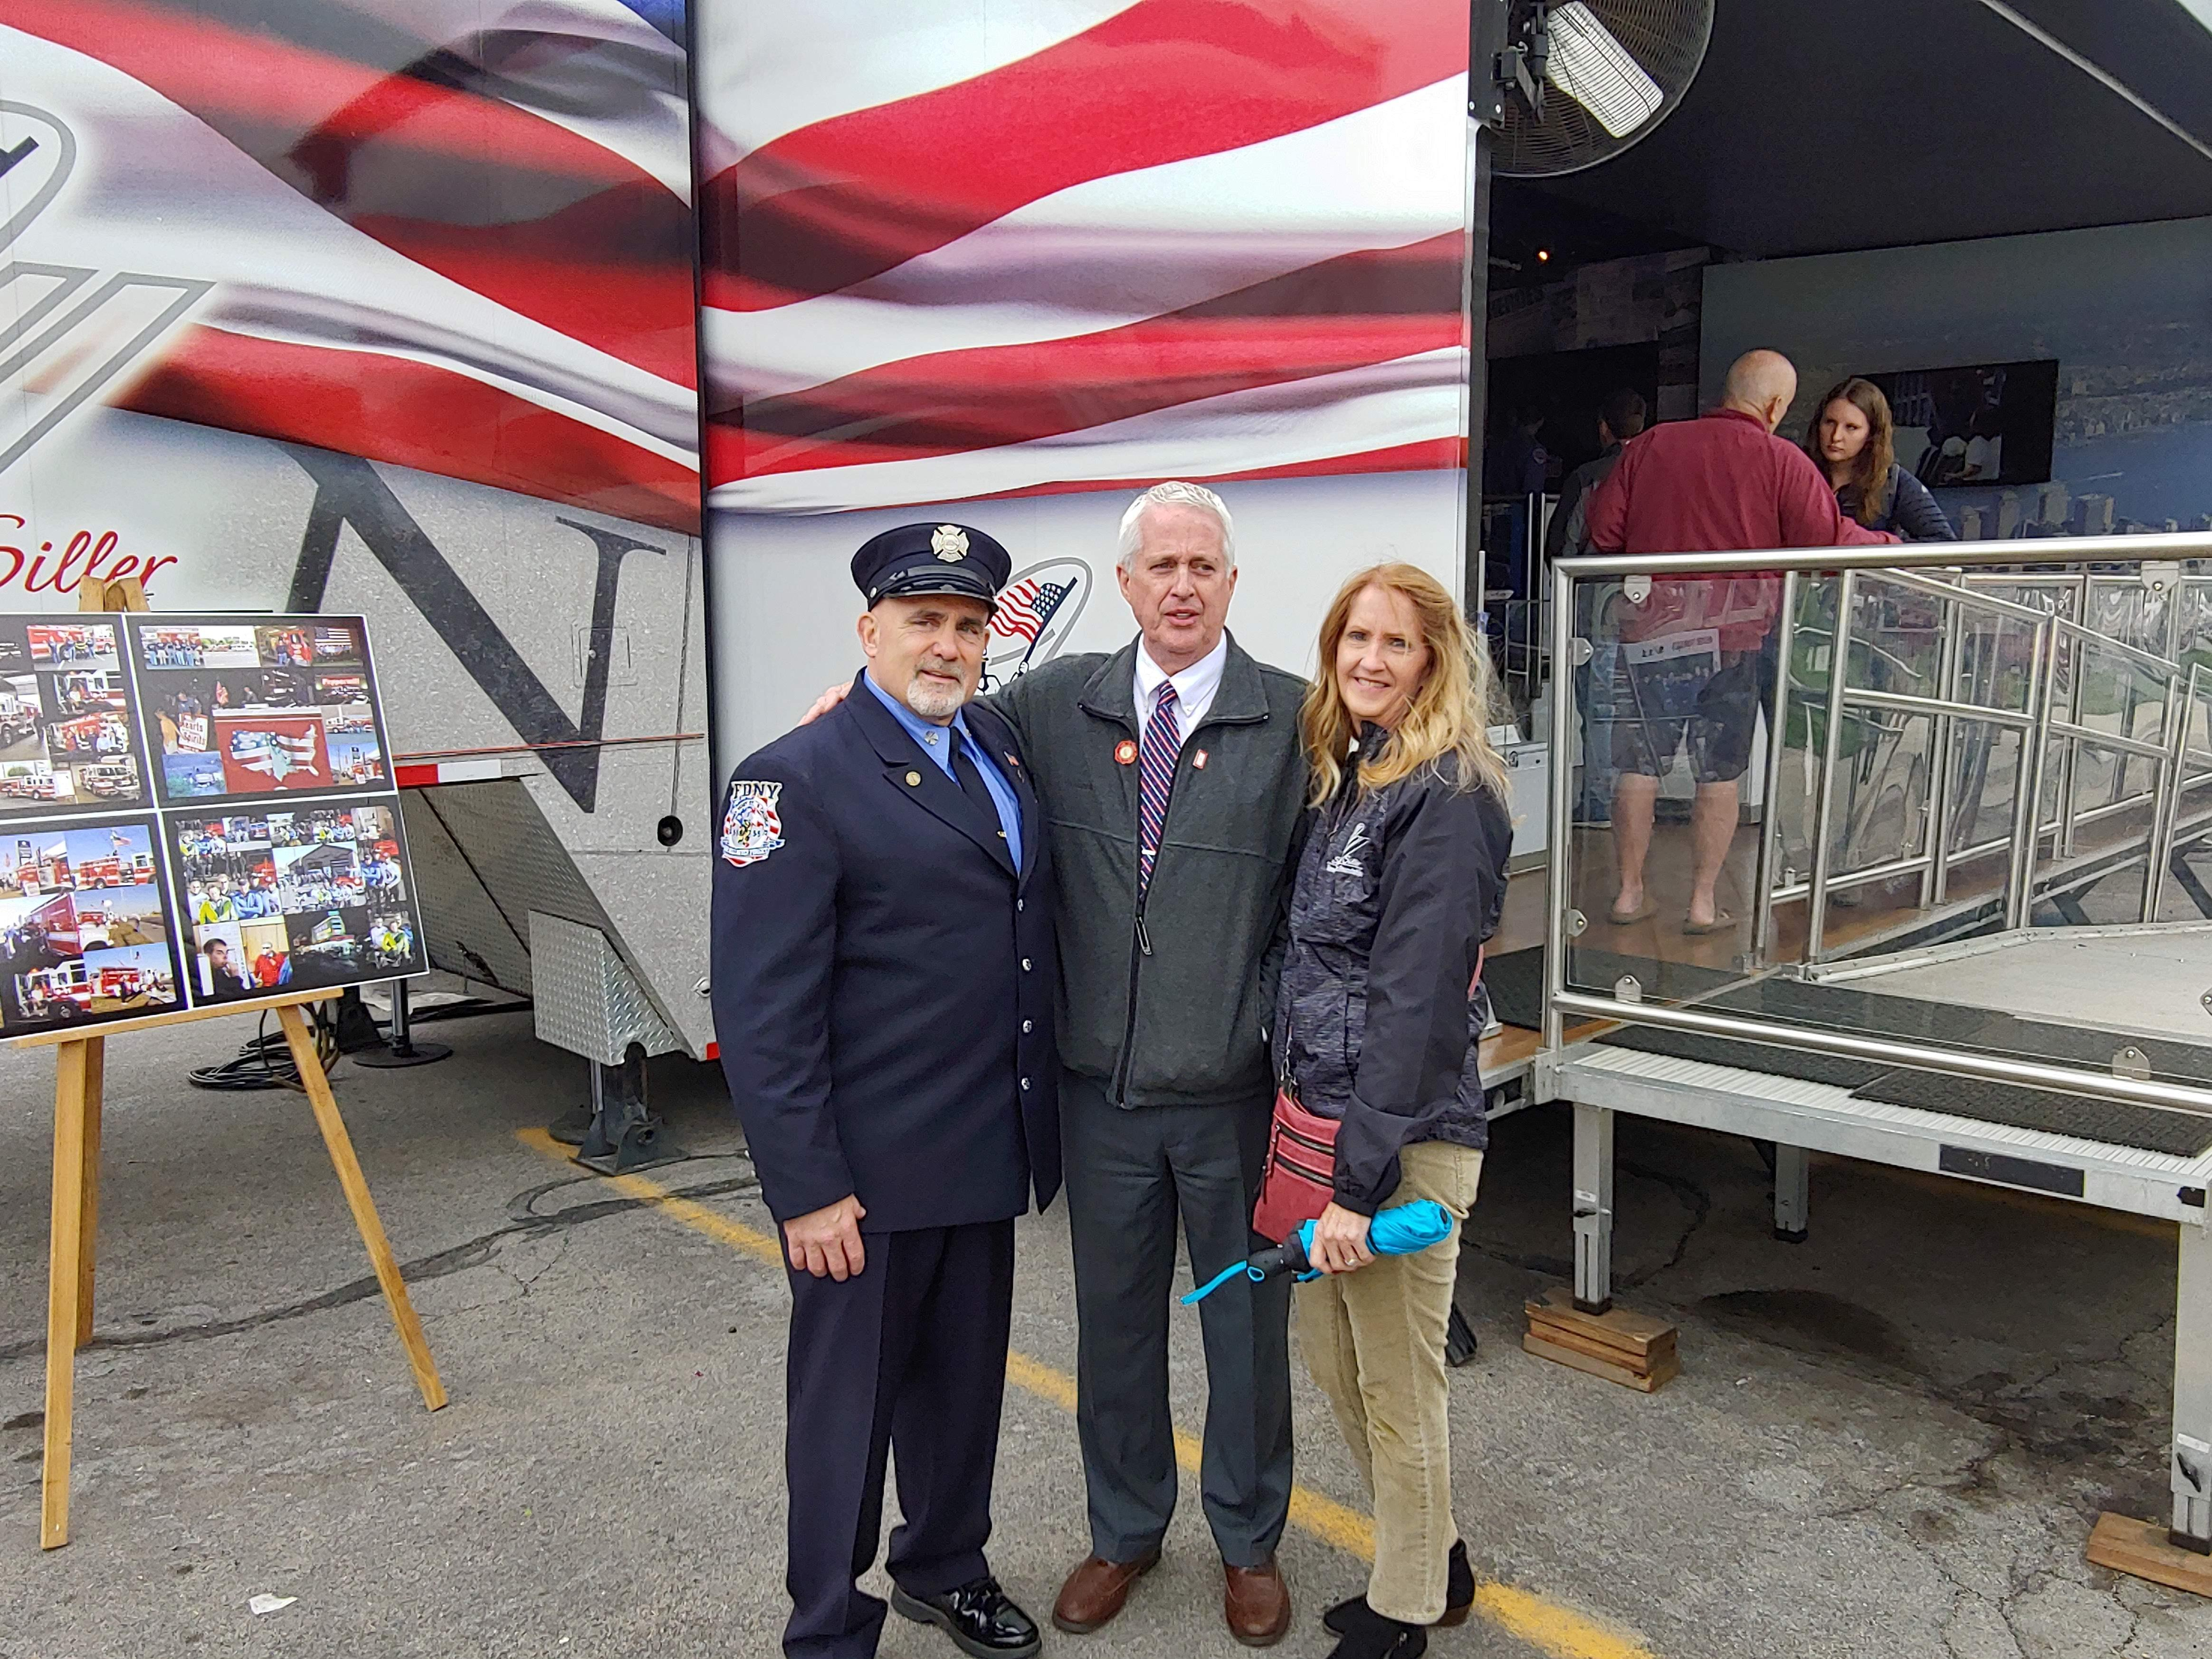 9/11 Never Forget traveling exhibit is in Utah for the first time. It's a mobile high-tech, 53-foot tractor-trailer that transforms into a 1,000 square foot exhibit. (Photo courtesy of Robin Pendergrast)